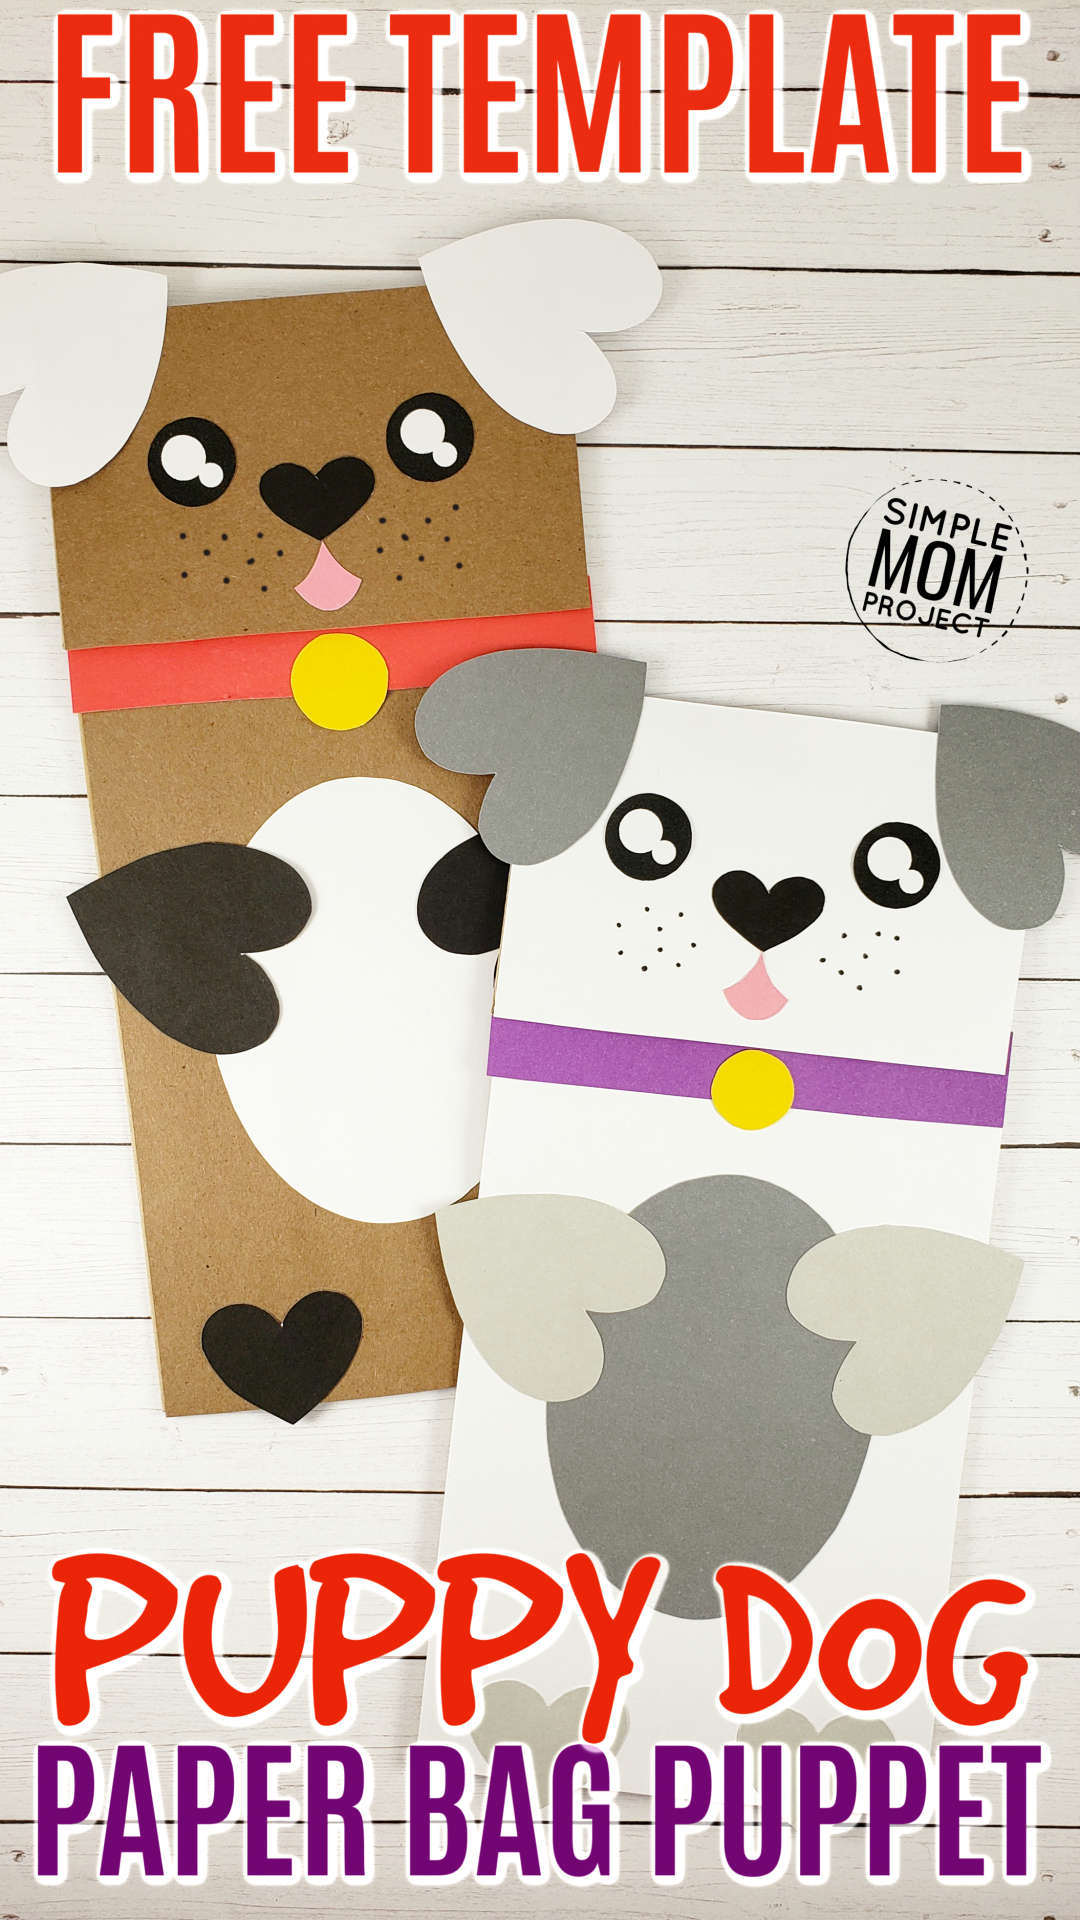 Download Easy Diy Paper Bag Dog Puppet Free Template Simple Mom Project Paper Bag Puppets Puppy Crafts Paper Bag Crafts